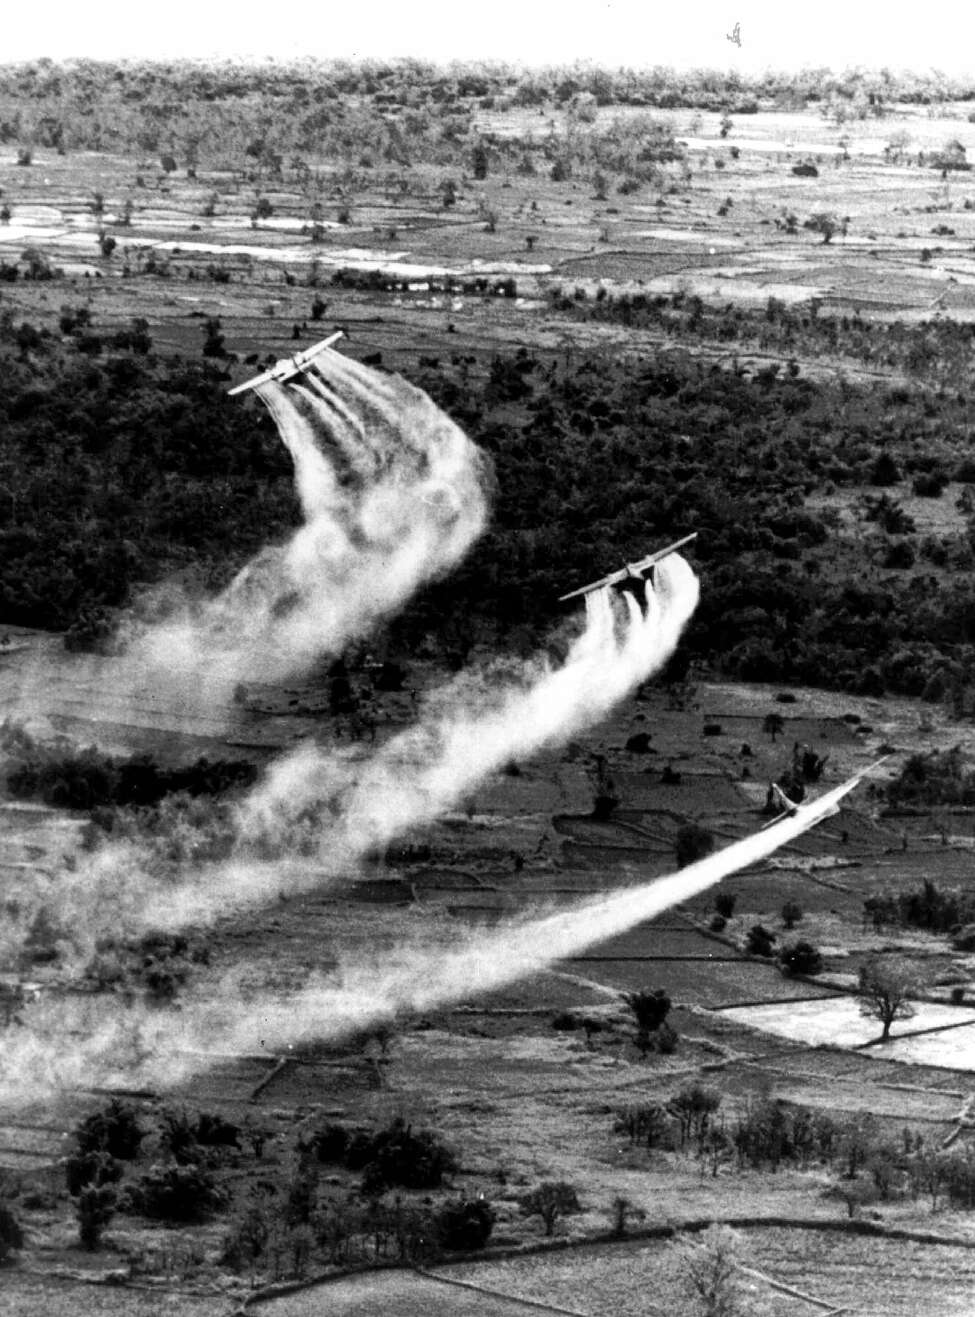 FILE--U.S. Air Force planes spray the defoliant chemical Agent Orange over dense vegetation in South Vietnam in this 1966 photo. Following a landmark conference on Agent Orange, officials from Vietnam and the U.S. agreed Sunday, March 10, 2002, to a framework for reserching the health and environmental effects of dioxin, the defoliant's toxic compound. (AP Photo)